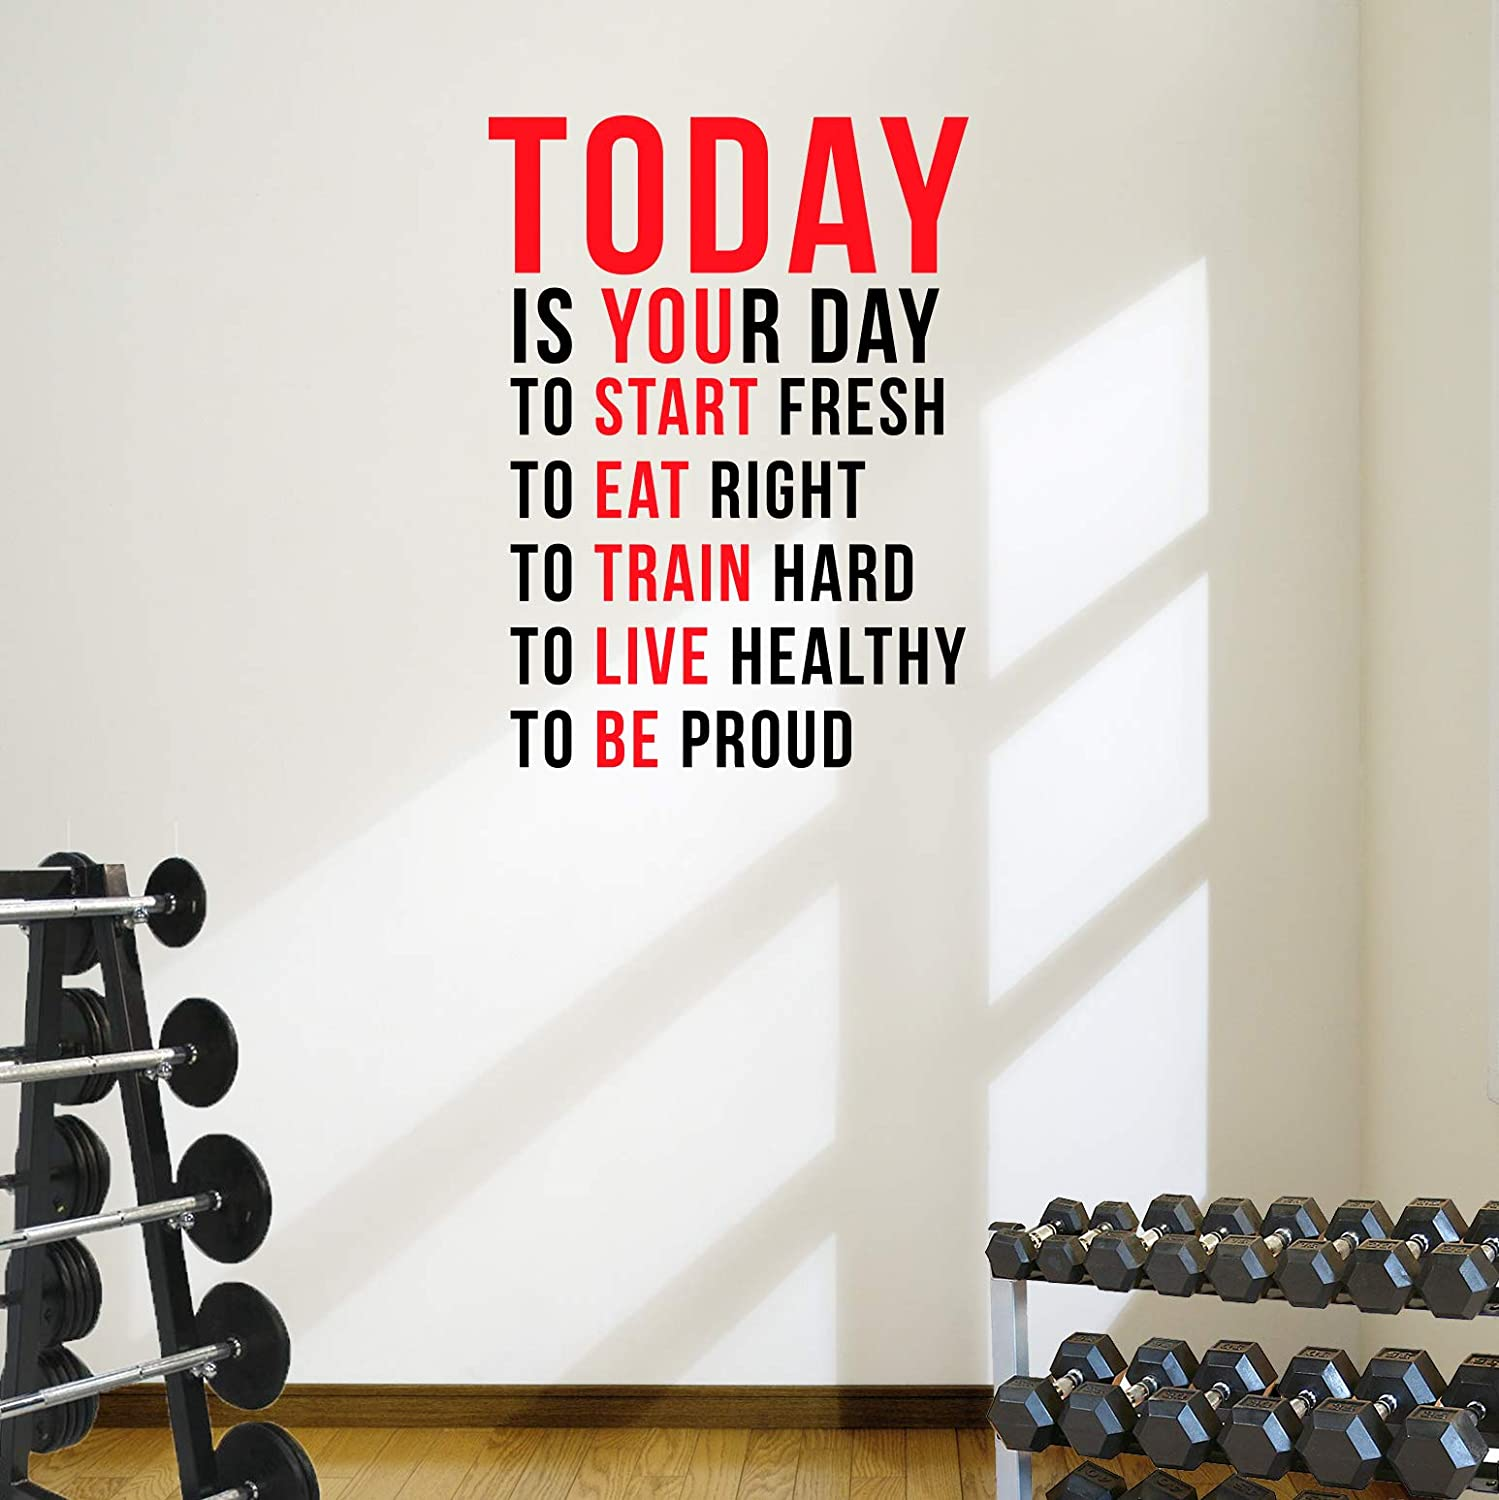 Today is Your Day Max Max 82% OFF 73% OFF to Start Decal Fresh... Motivational Wall Quot